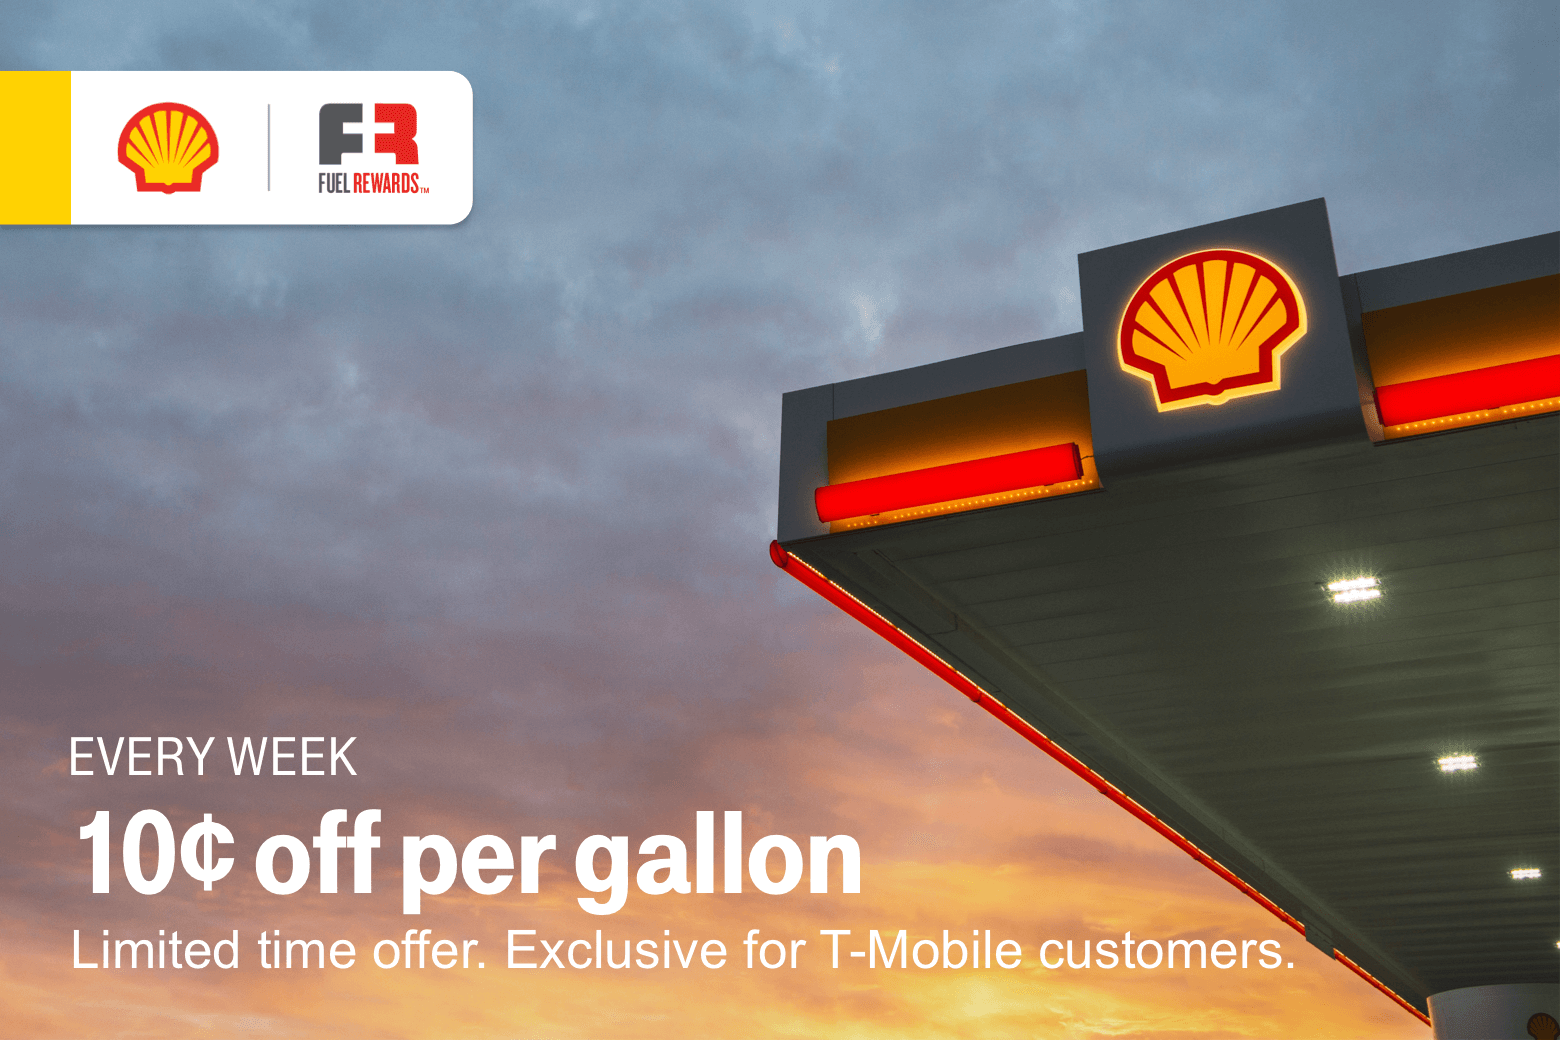 Shell. Every week. 10 cents off per gallon. Limited time offer. Exclusive for T-Mobile customers.